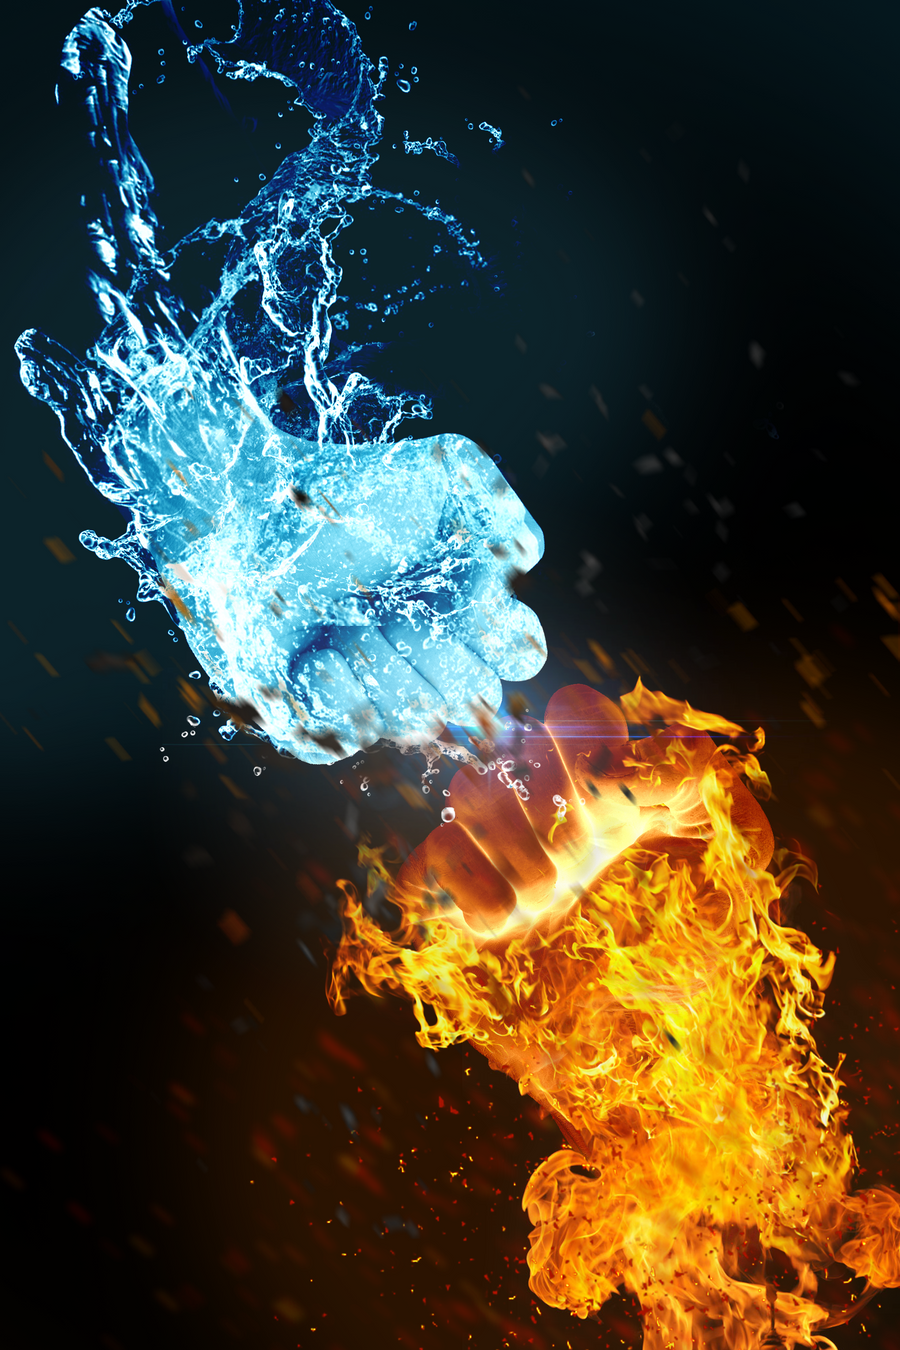 Water Vs Fire 2nd Version By Ryusaki59 On Deviantart. University In Dallas Texas Patelco Auto Loan. Small Engine Repair Marietta Ga. Stock Broker Career Path Domain Name Checking. Payday Cash Loans Online Plumber In Baltimore. Current 30 Year Mortgage Rate. Instant Oatmeal Vs Oatmeal Rent Or Mortgage. Non Owners Sr22 Insurance Quotes. Bad Credit Mortgage Interest Rates